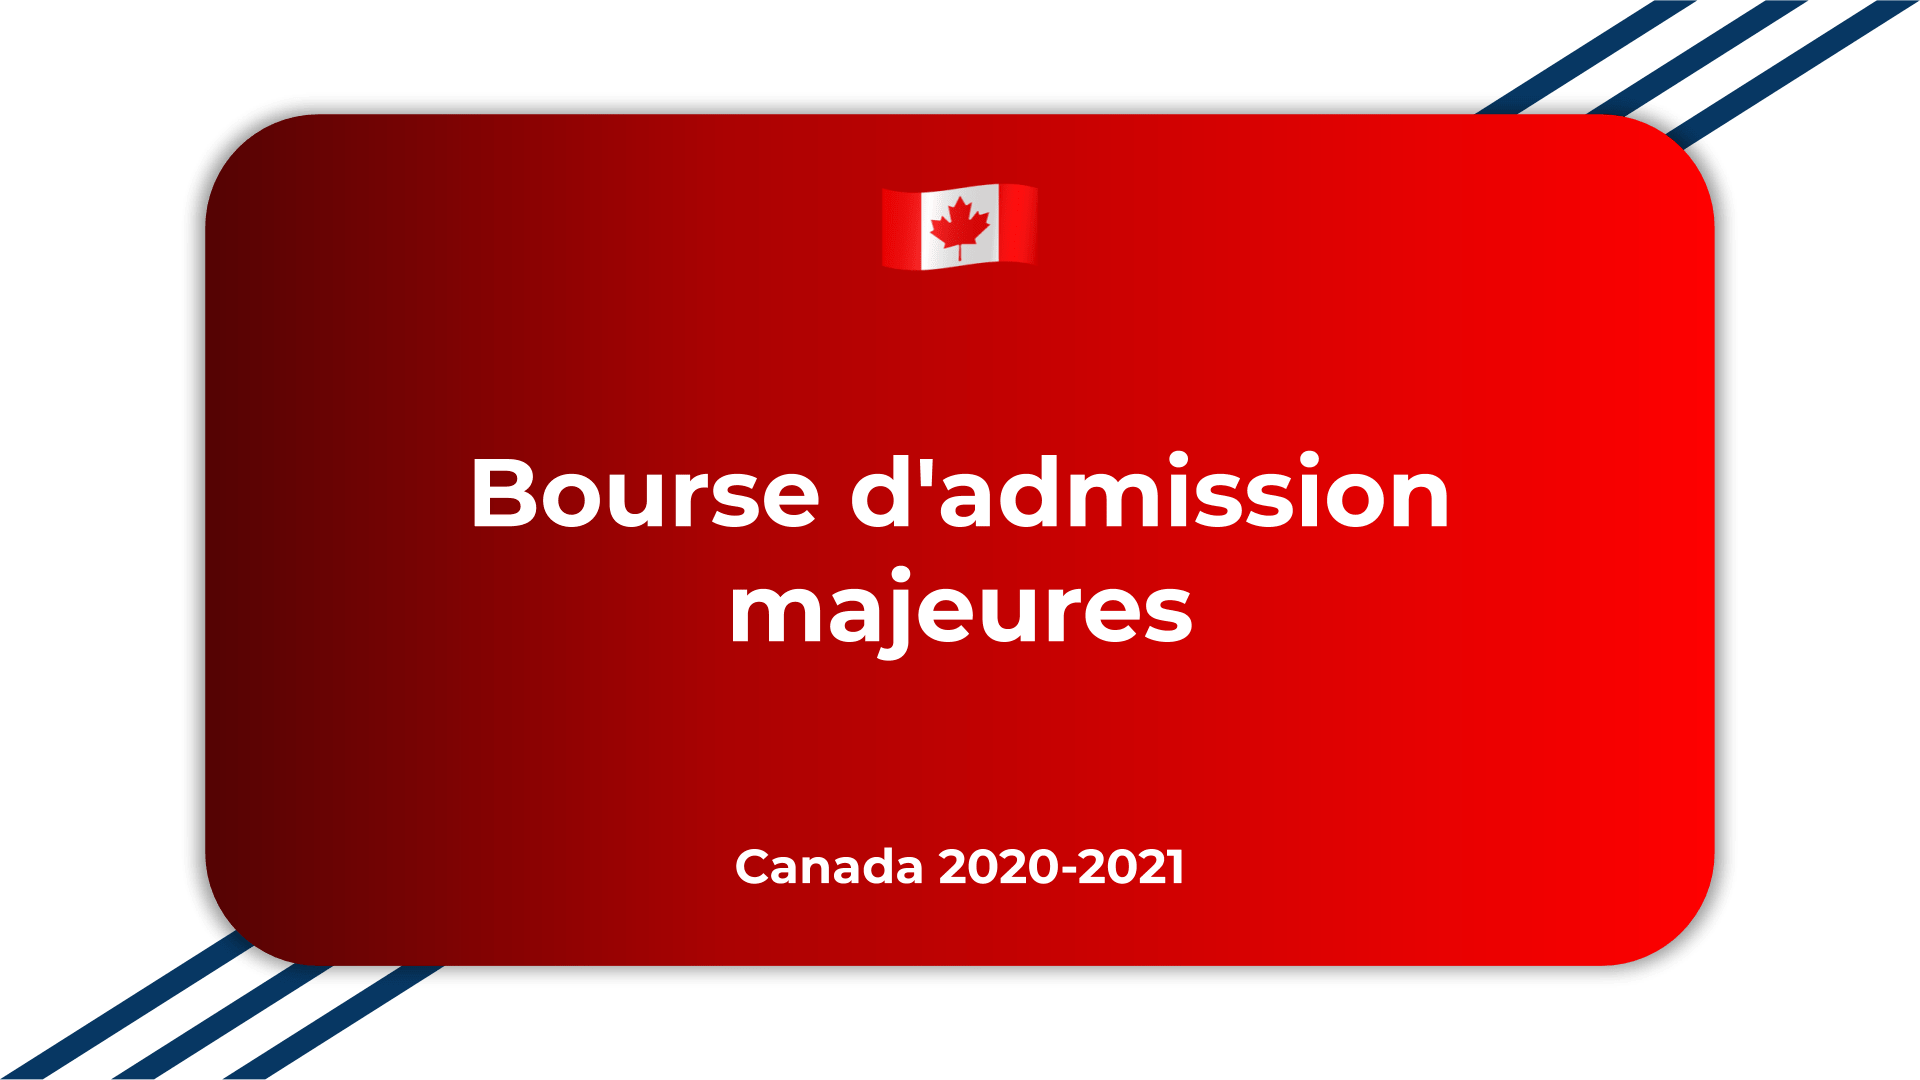 Bourse d'admission majeures Canada